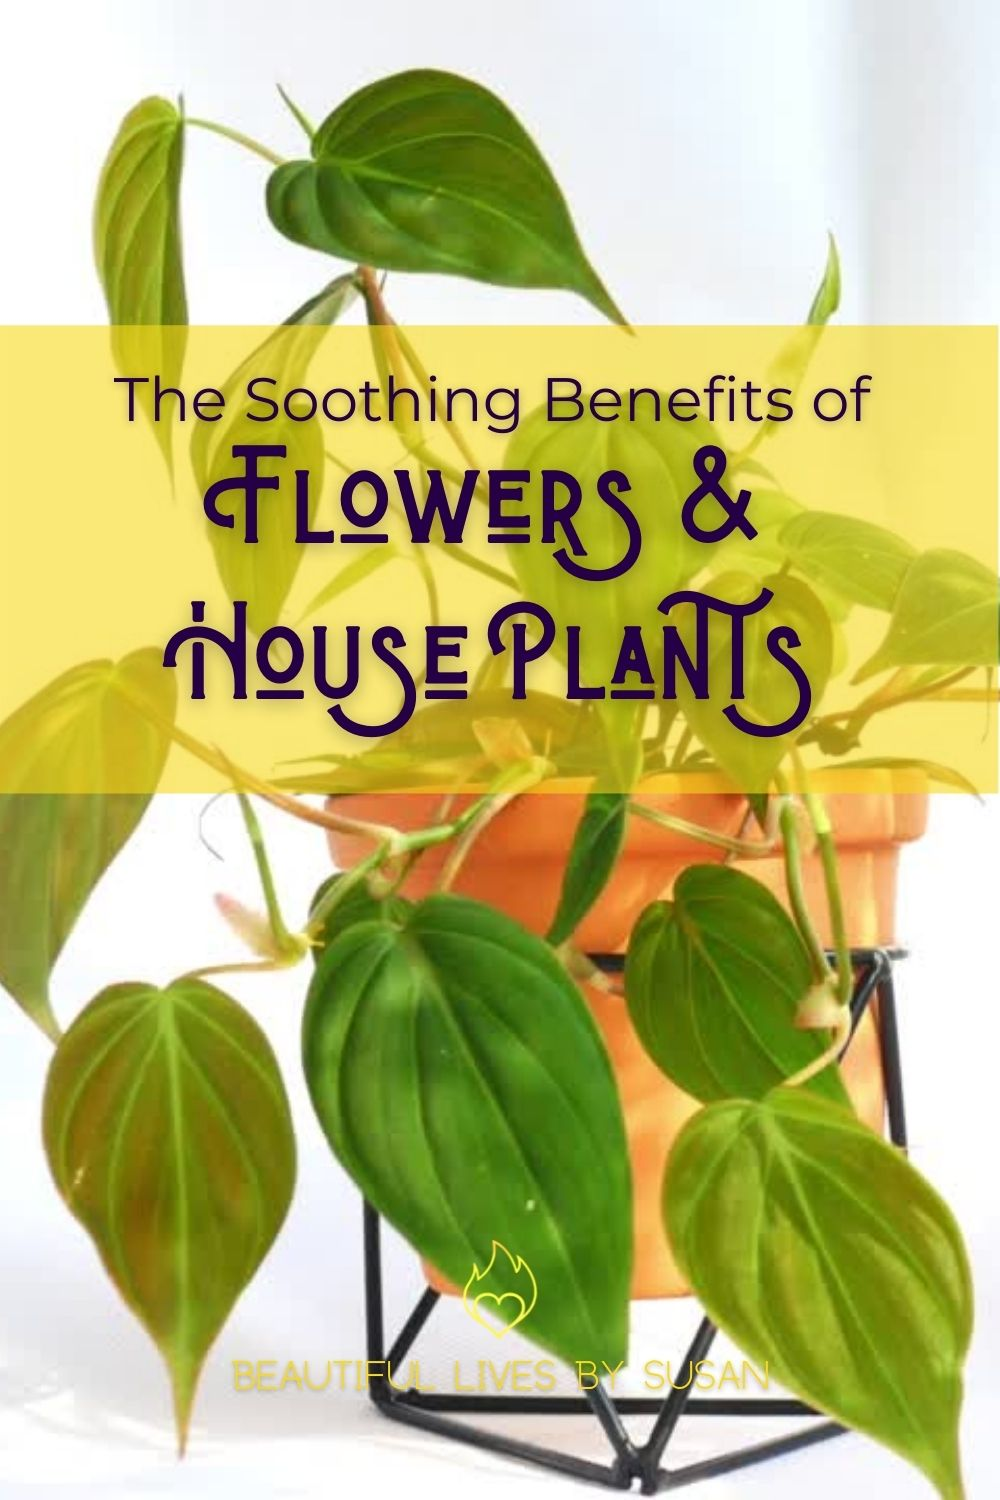 The Soothing Benefits of Flowers and House Plants video with Heart Leaf Philodendron, Chrysanthemum Flowers, and Gerbera Daisy Flowers.